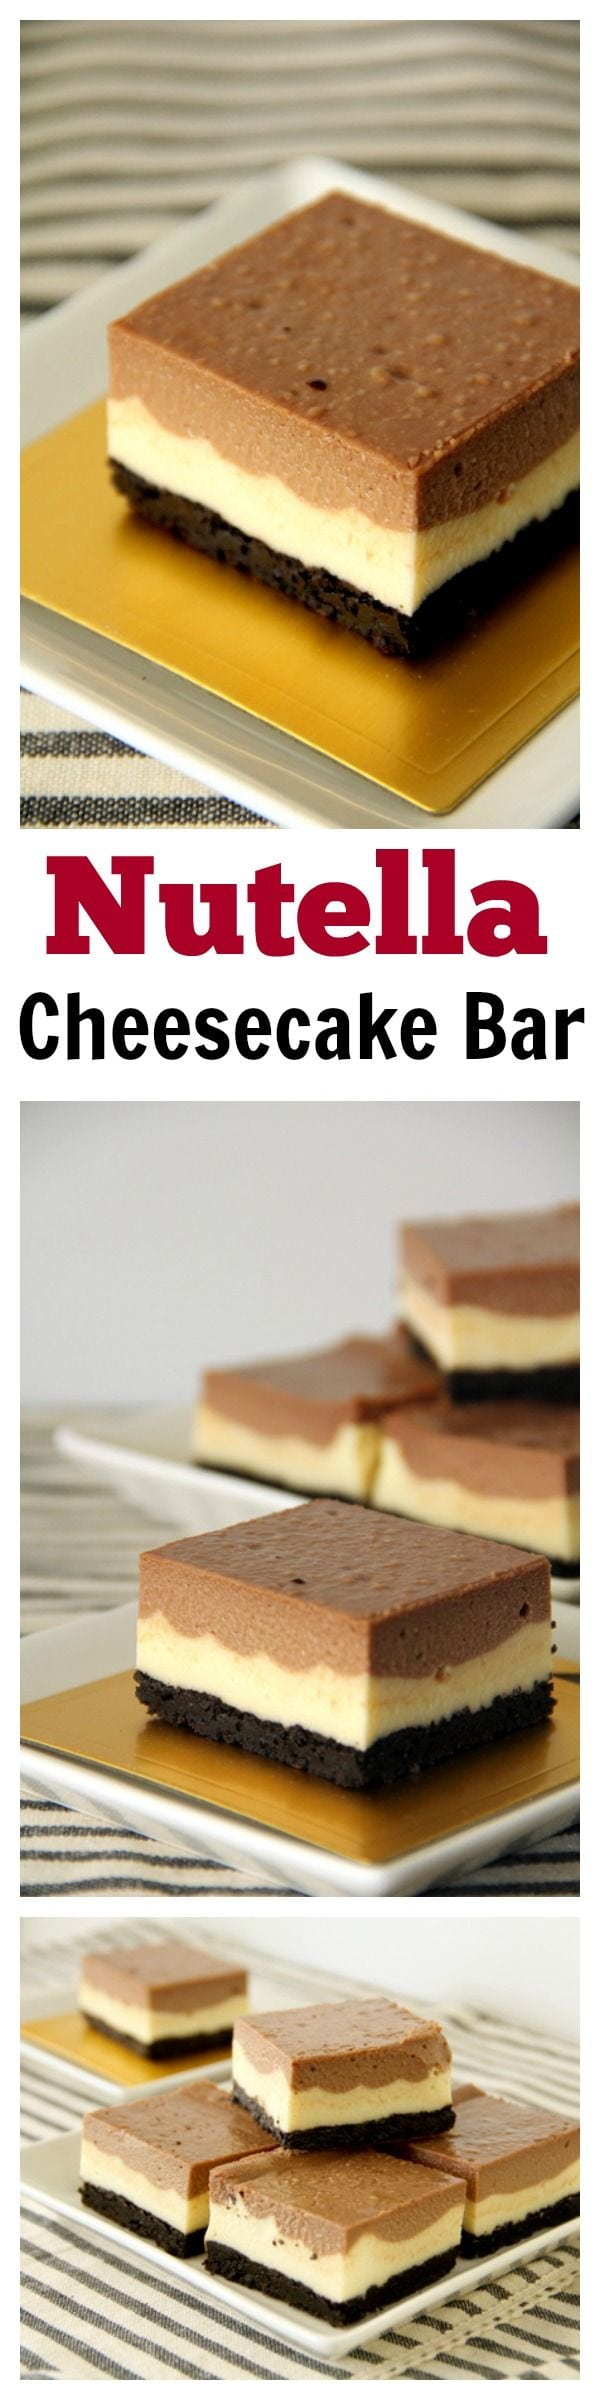 Nutella Cheesecake Bars with Oreo Base - Crazy decadent and rich cheesecake bar loaded with Nutella, must-try recipe | rasamalaysia.com